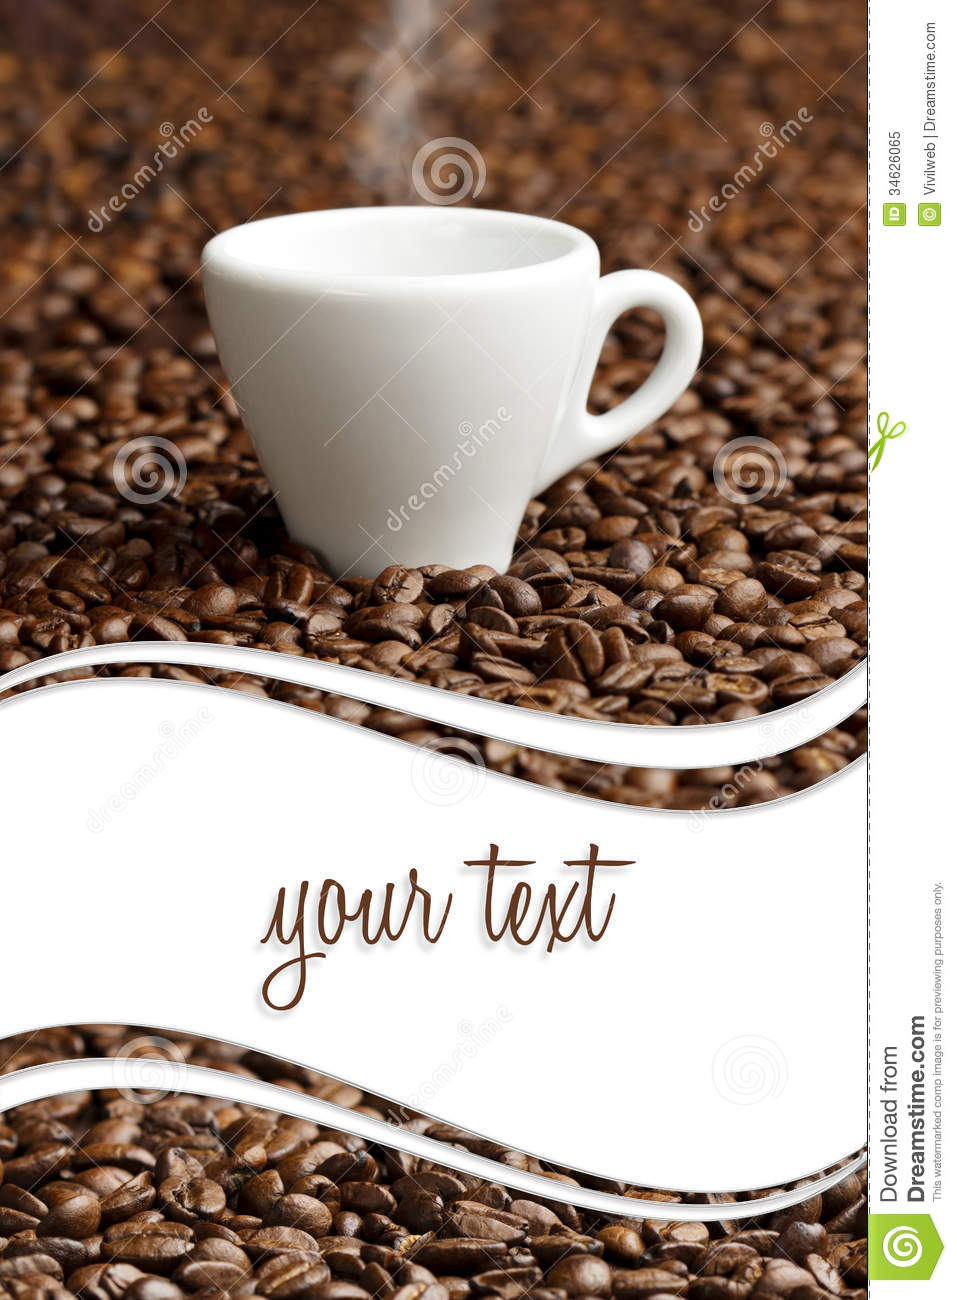 Steaming cup and coffee beans Coffee Beans And Cup Background